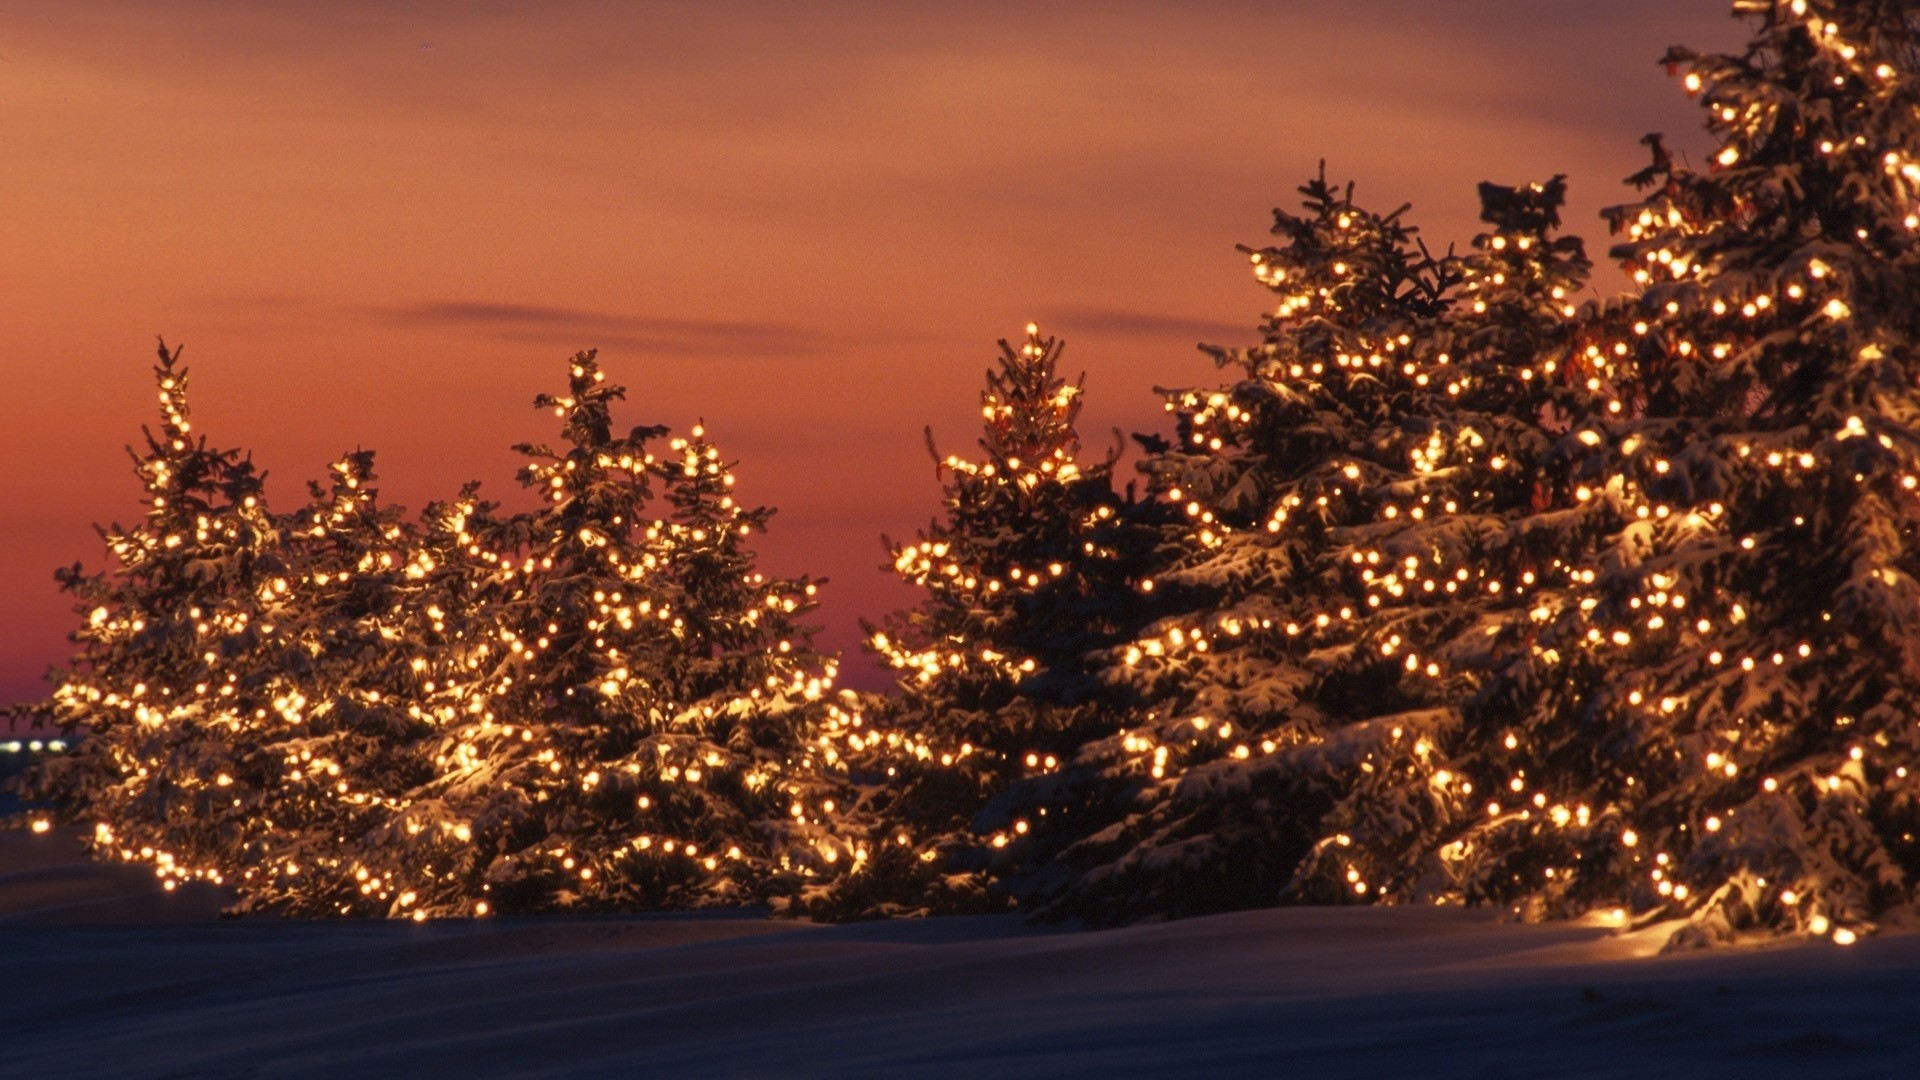 Holiday Desktop Backgrounds 66 images 1920x1080